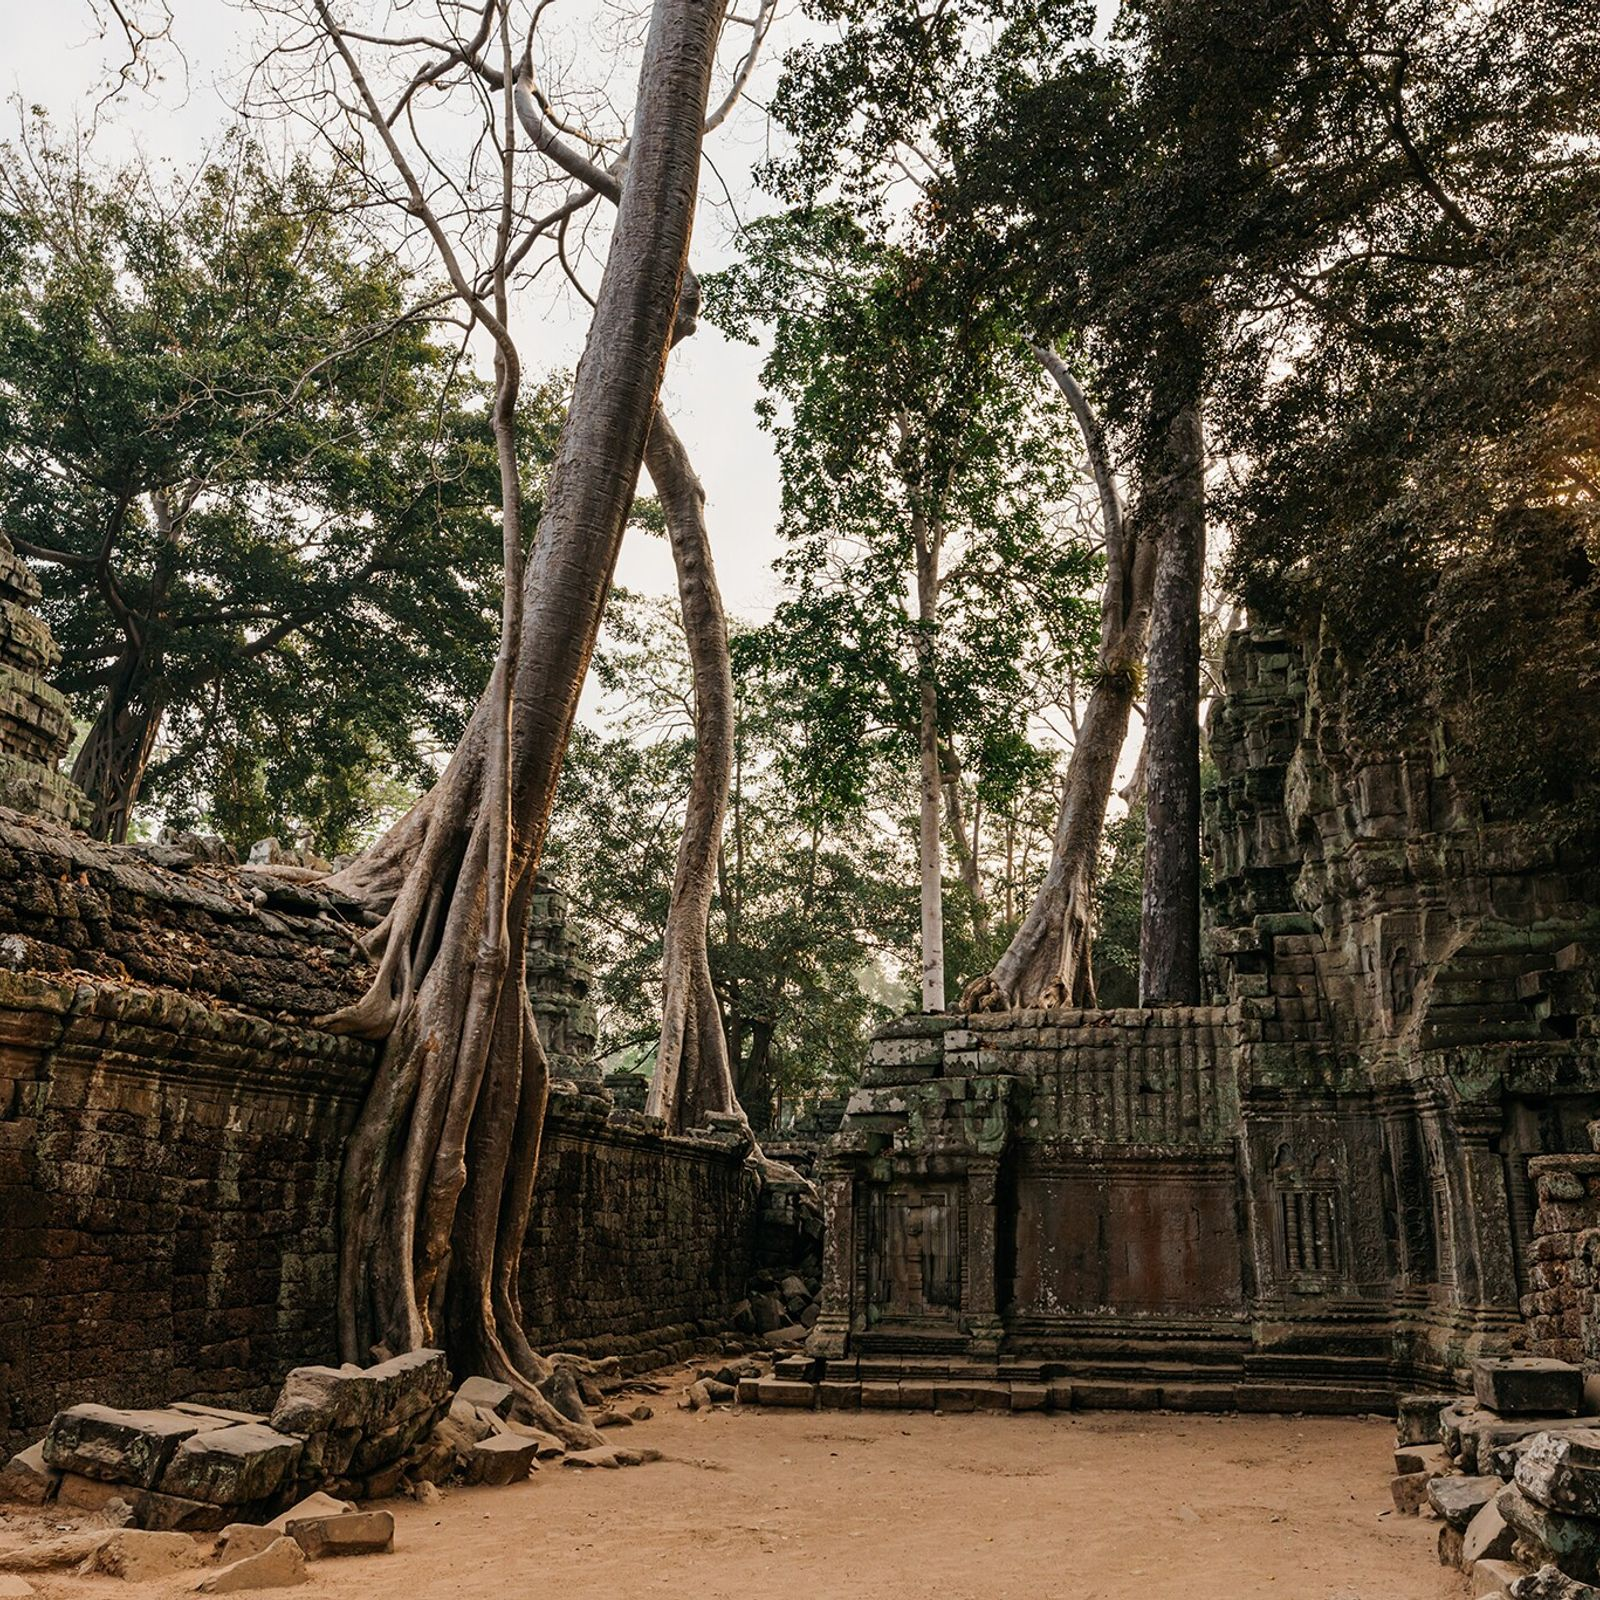 Angkor, the former seat of Cambodia's Khmer Empire, is a sprawling complex that has become one ...